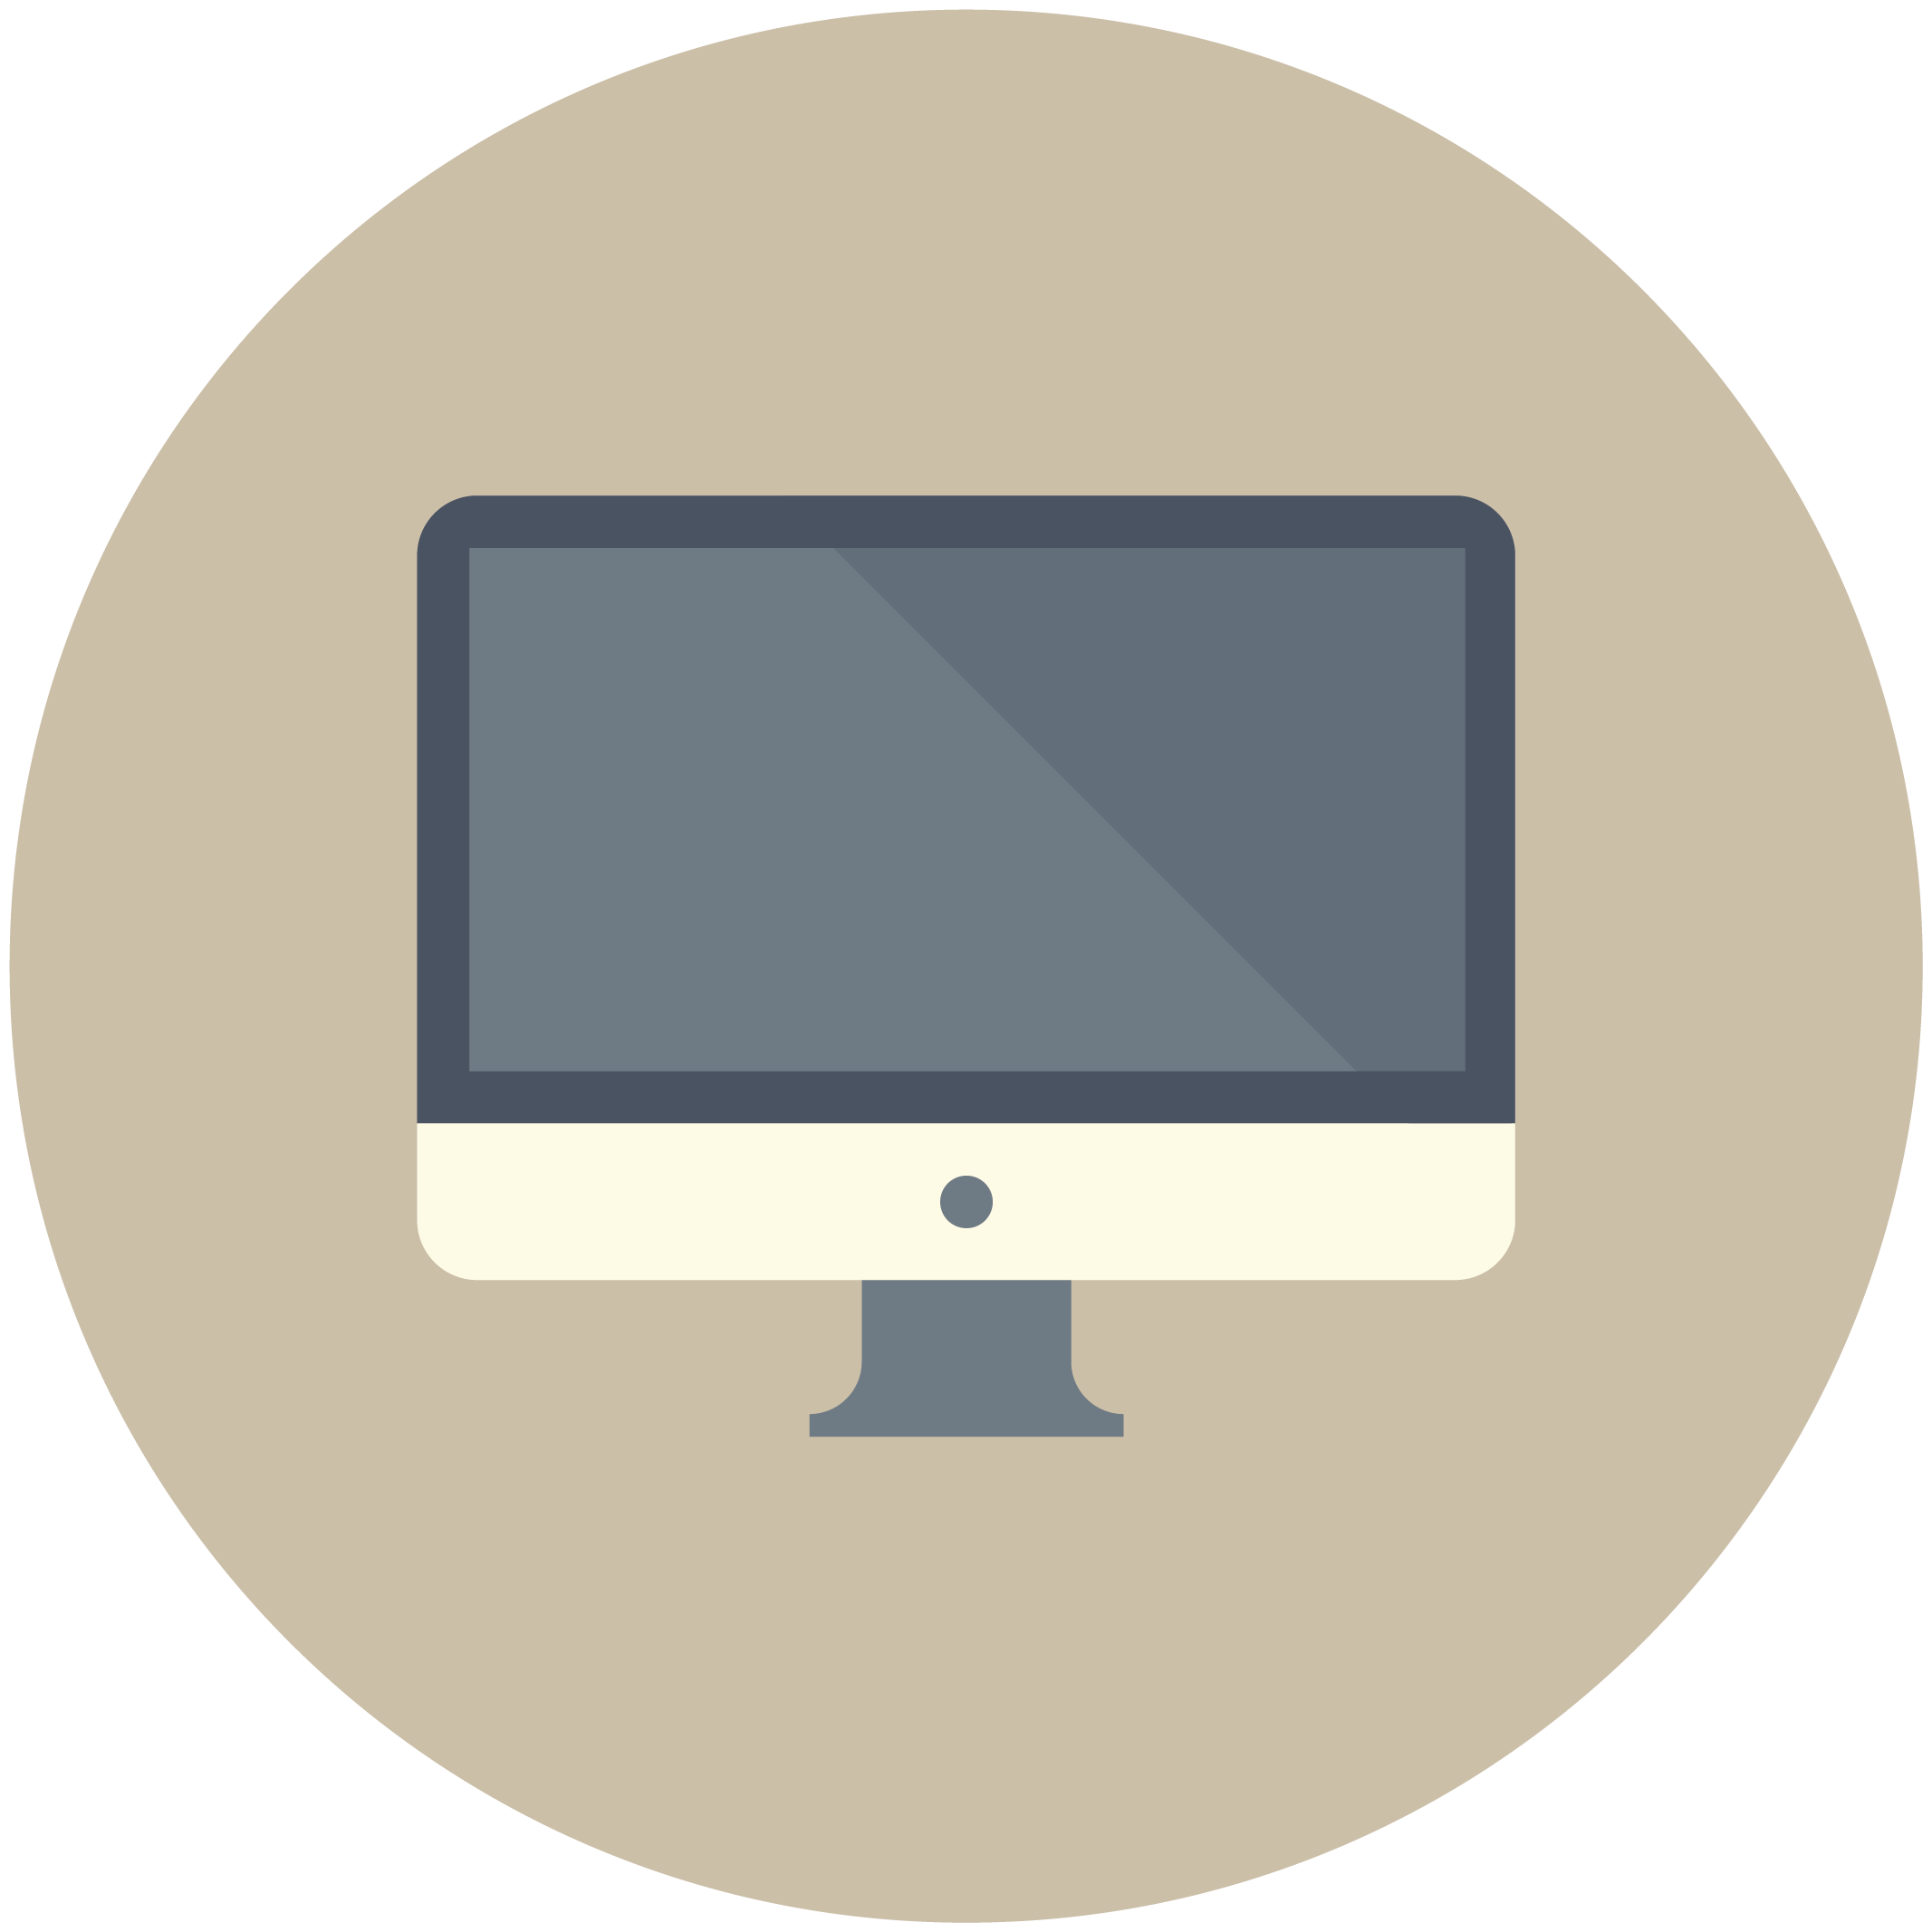 Computer Icon Image | Web Icons PNG